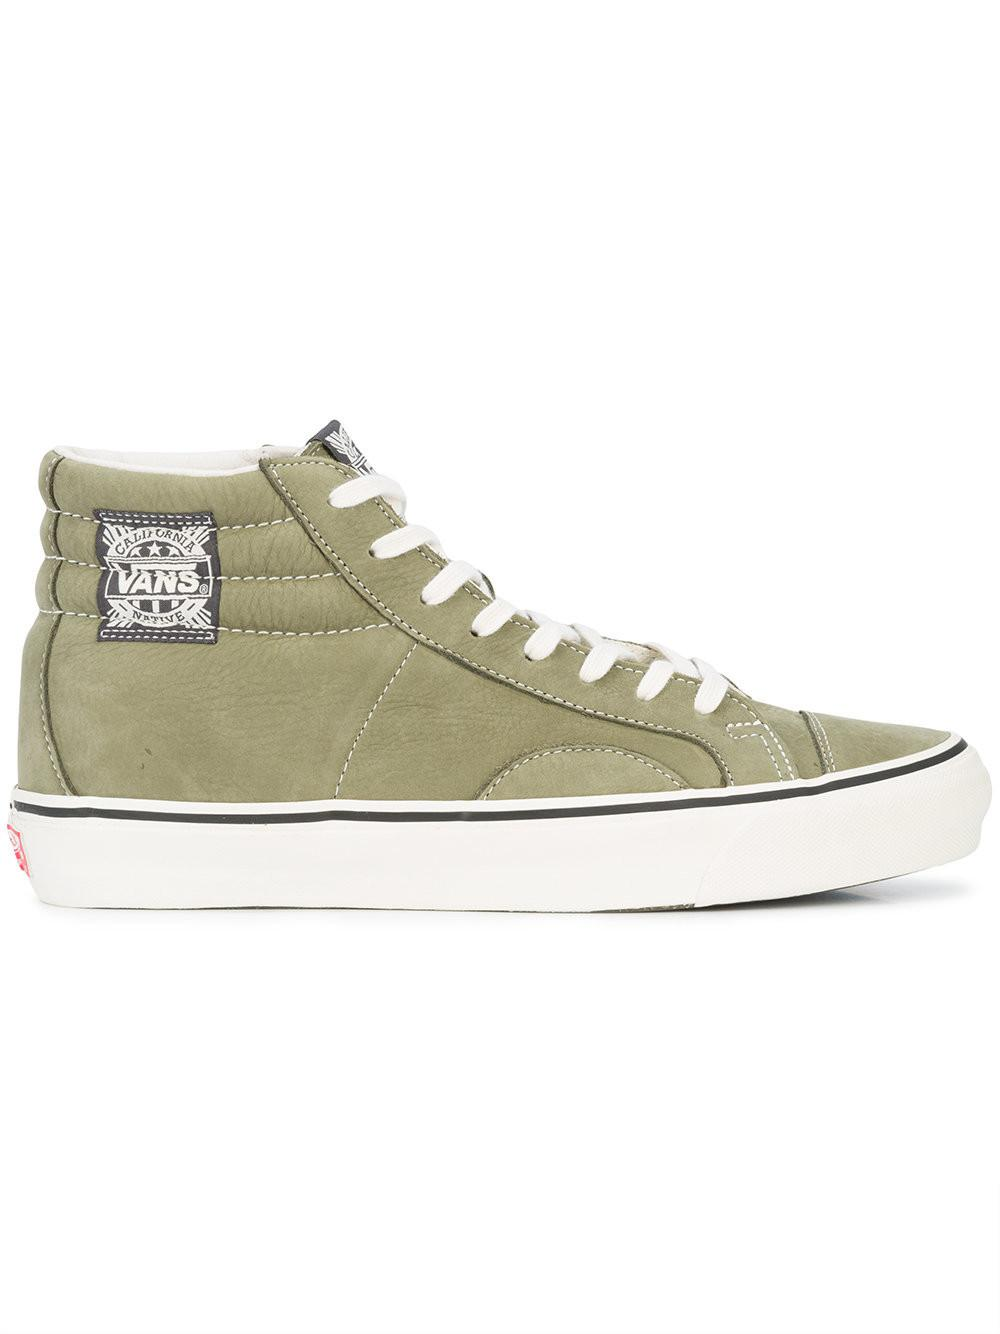 Lyst - Vans Og Style 238 Lx Sk8 Sneakers for Men - Save 10% a20dce8f2